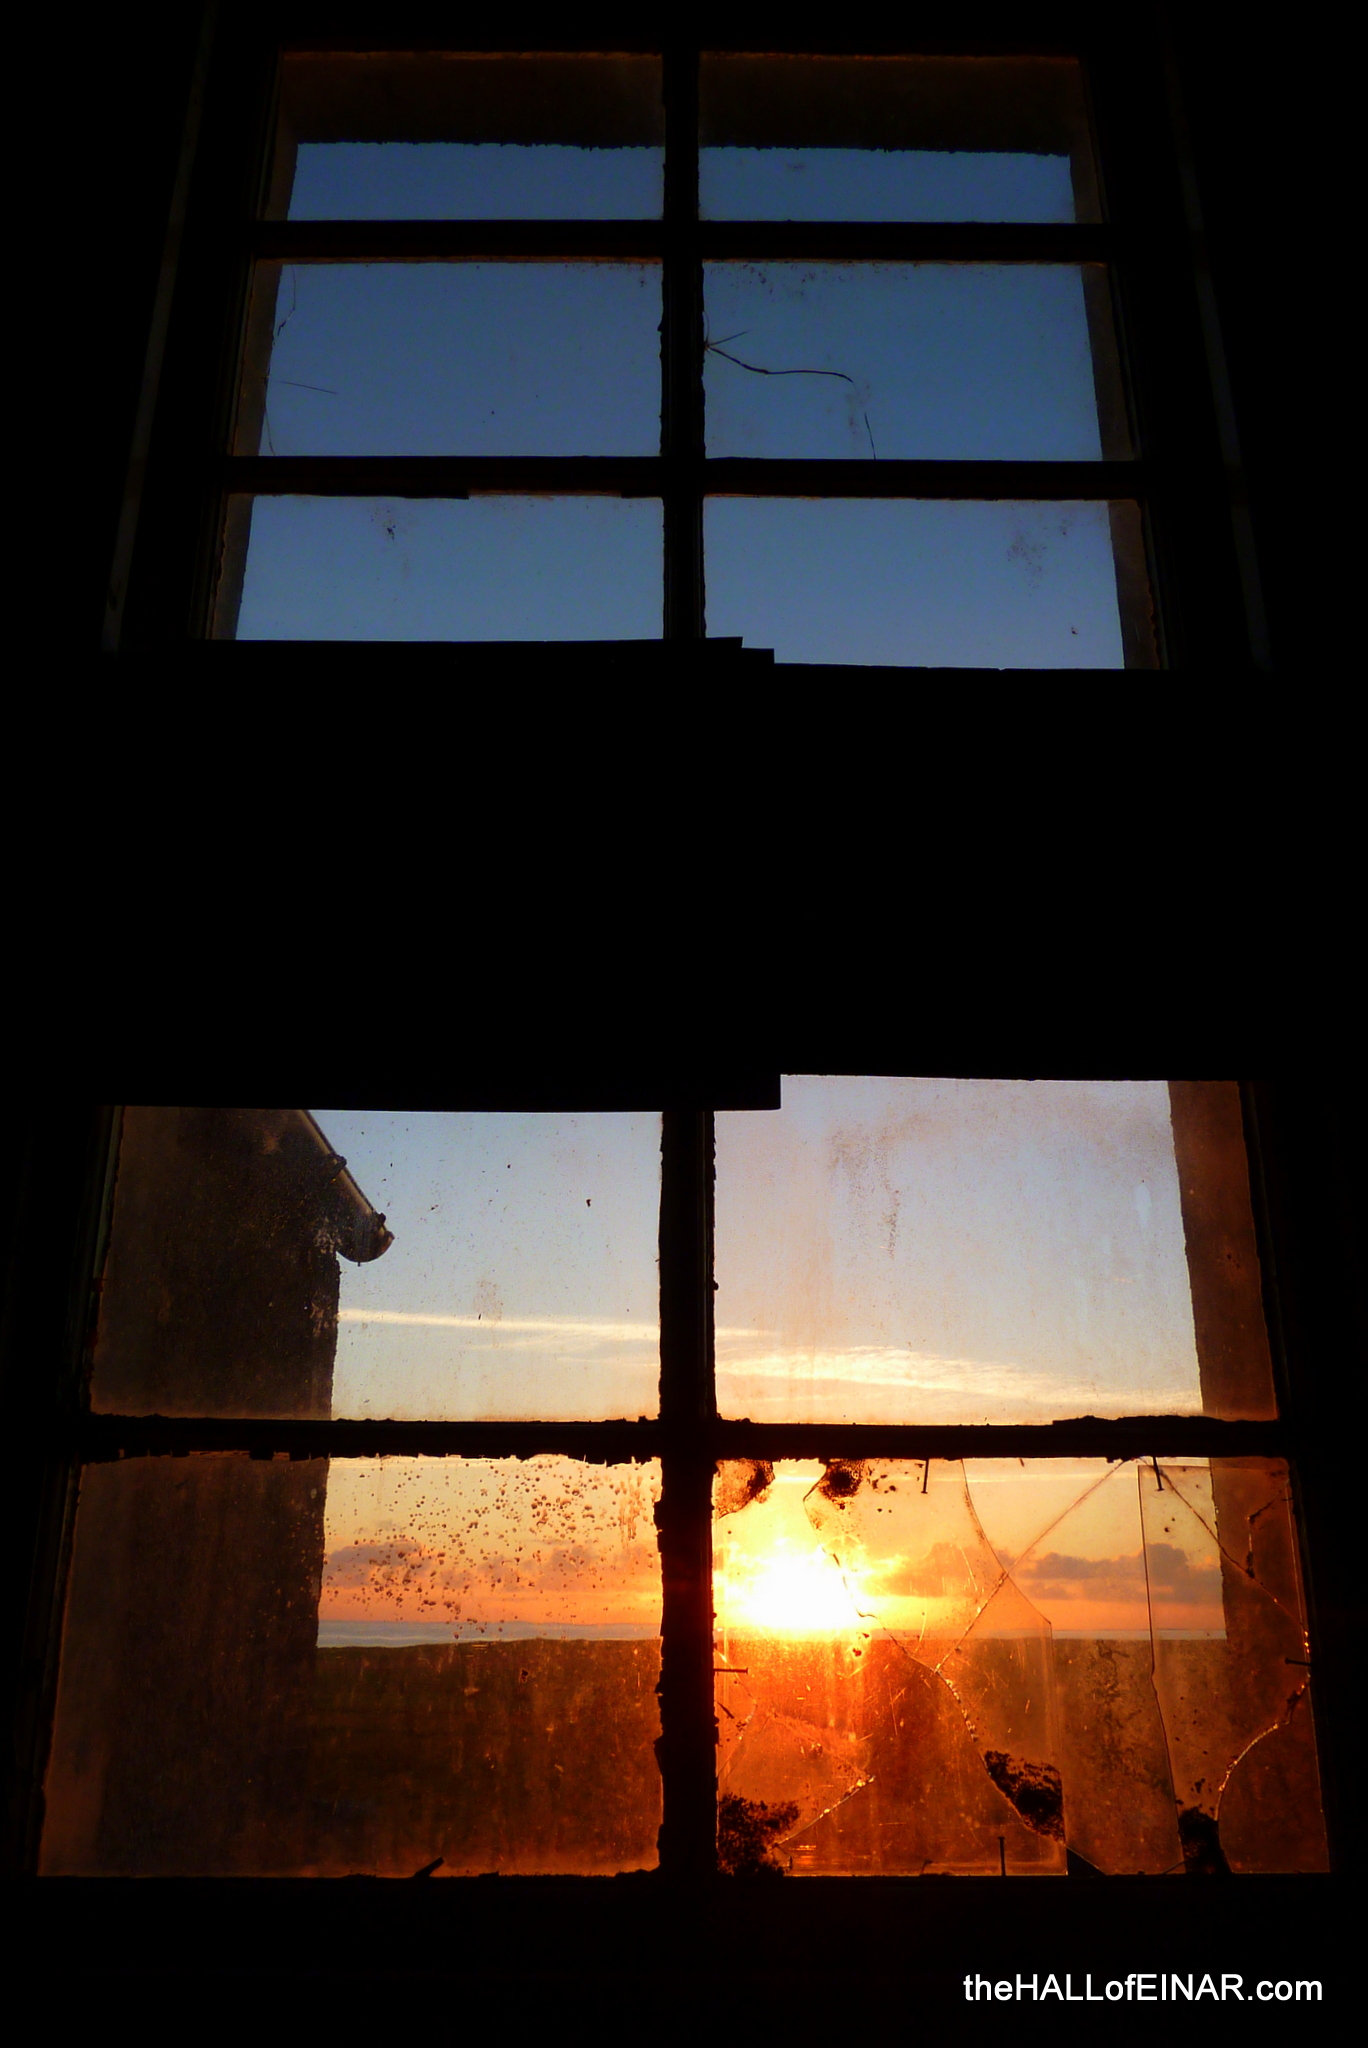 Sunrise through broken windows - photograph (c) 2016 David Bailey (not the)